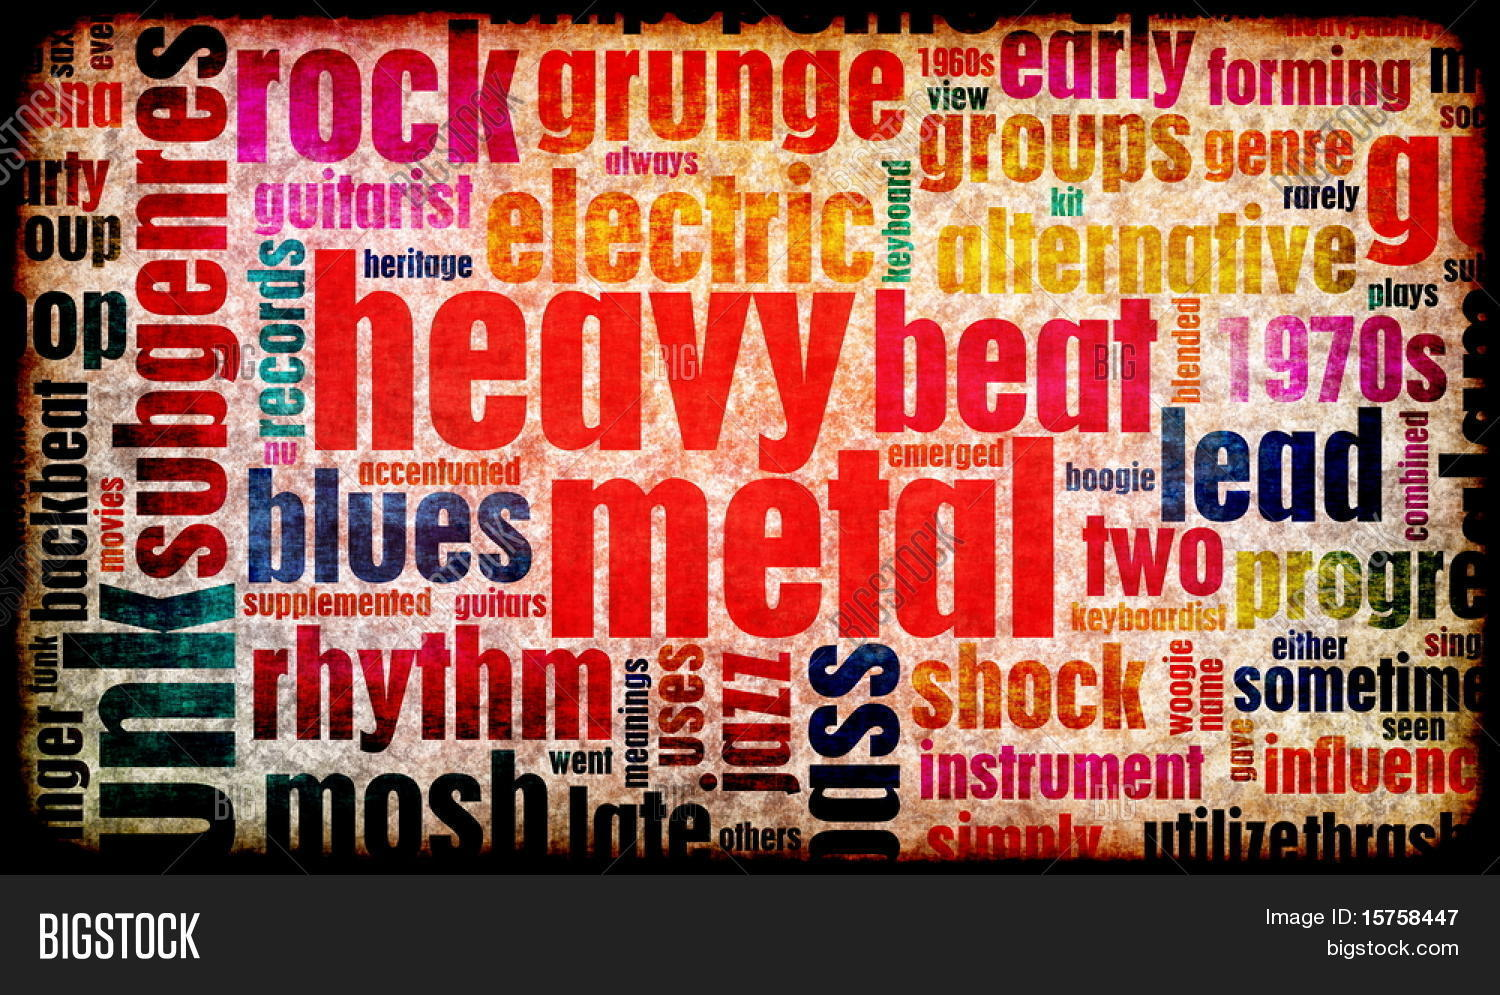 Metal music background - Heavy Metal Music Poster Art As A Background